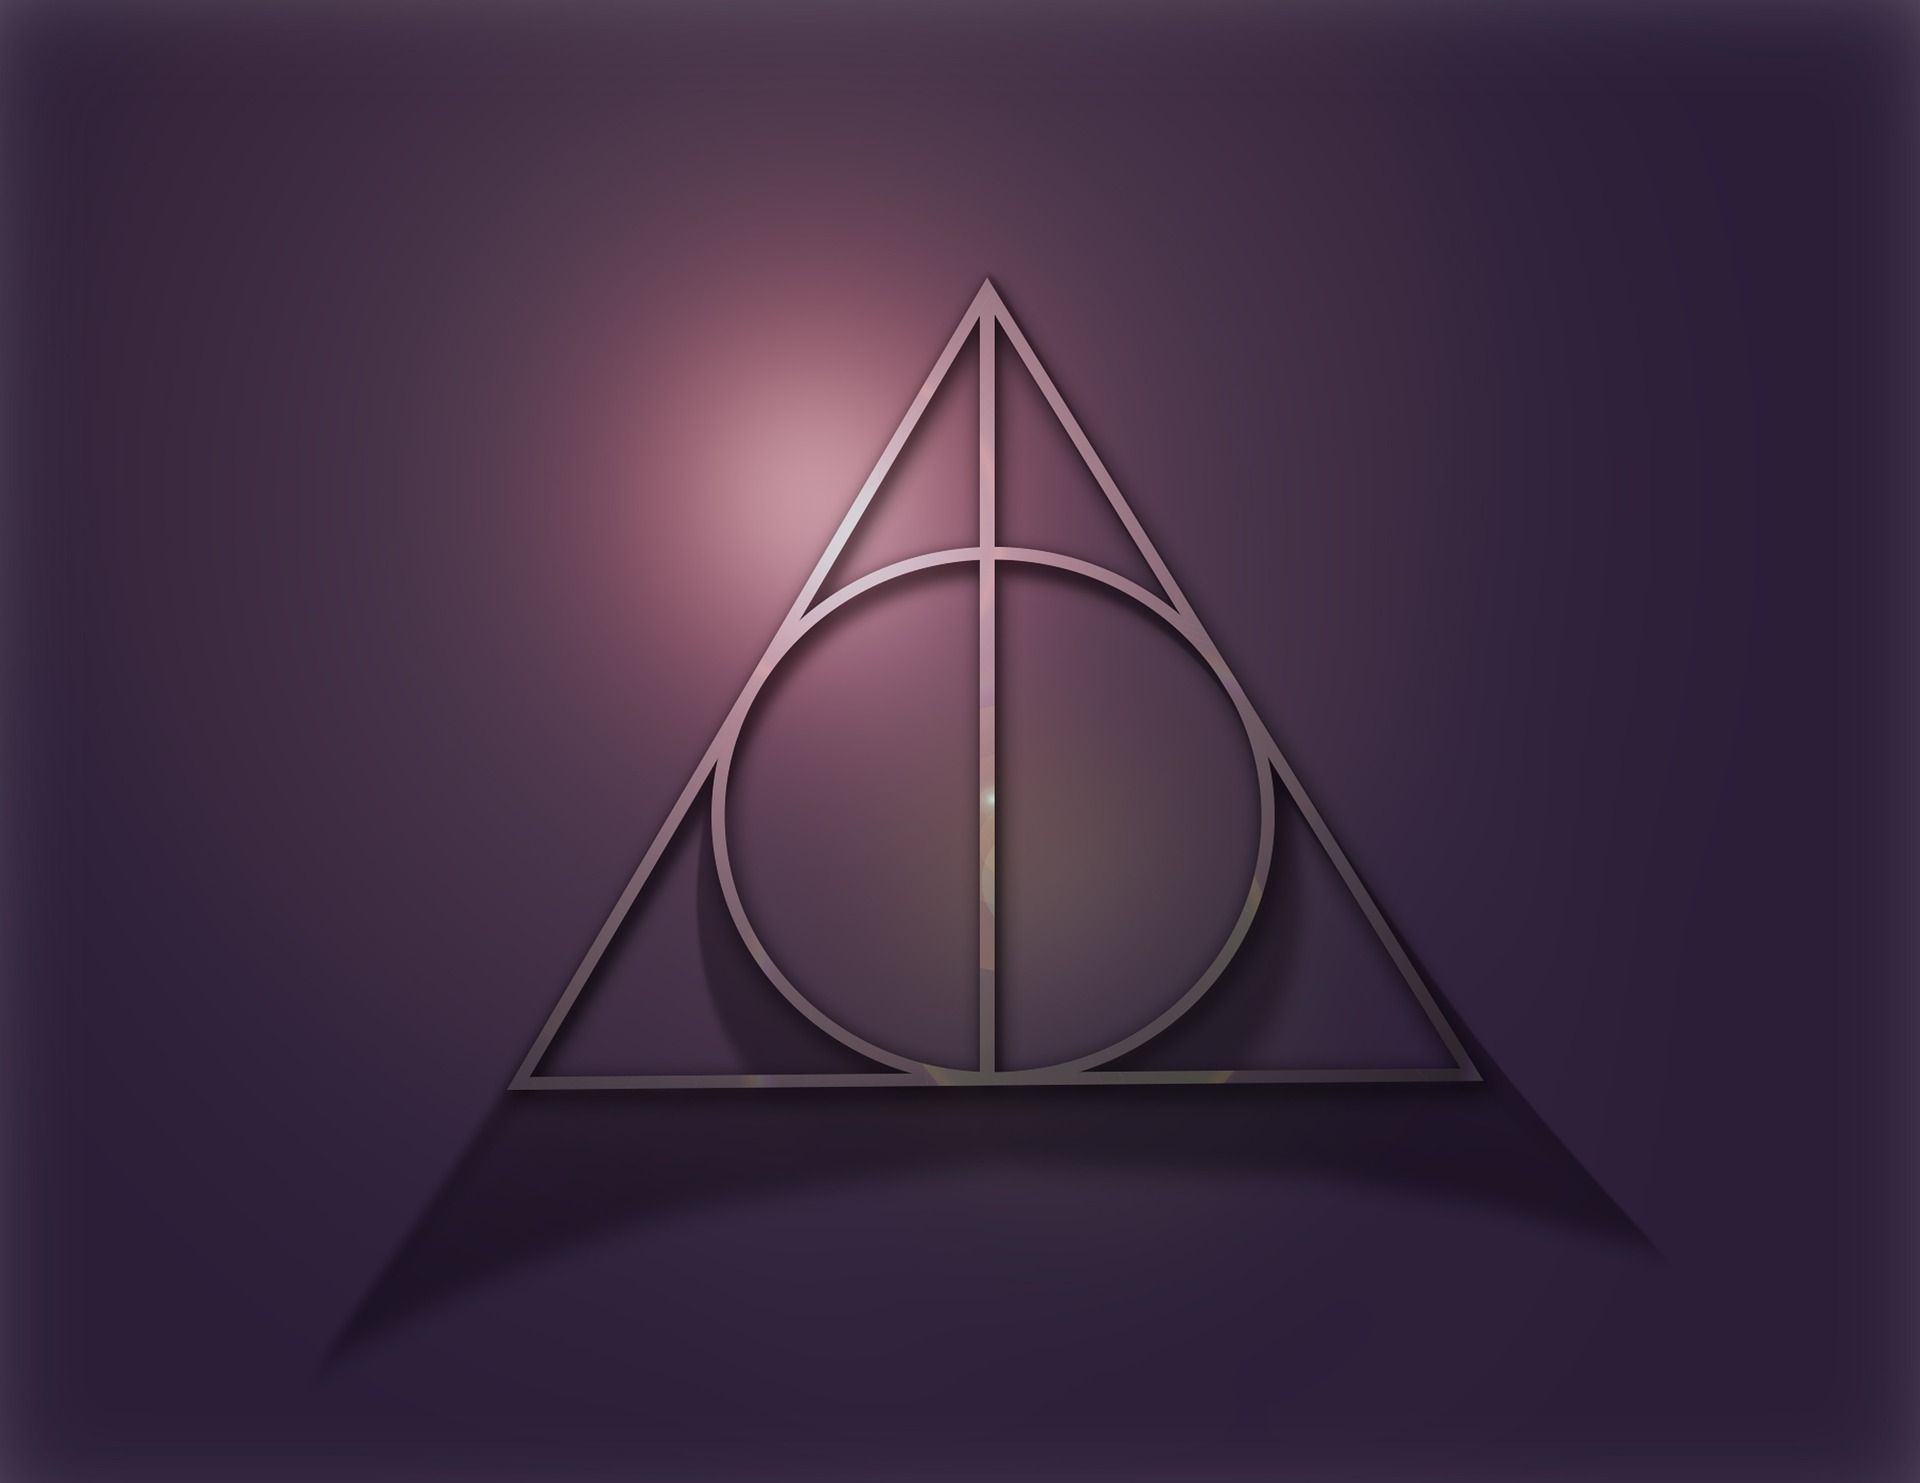 Harry Potter Images Deathly Hallows Hd Wallpaper And พ น หล ง